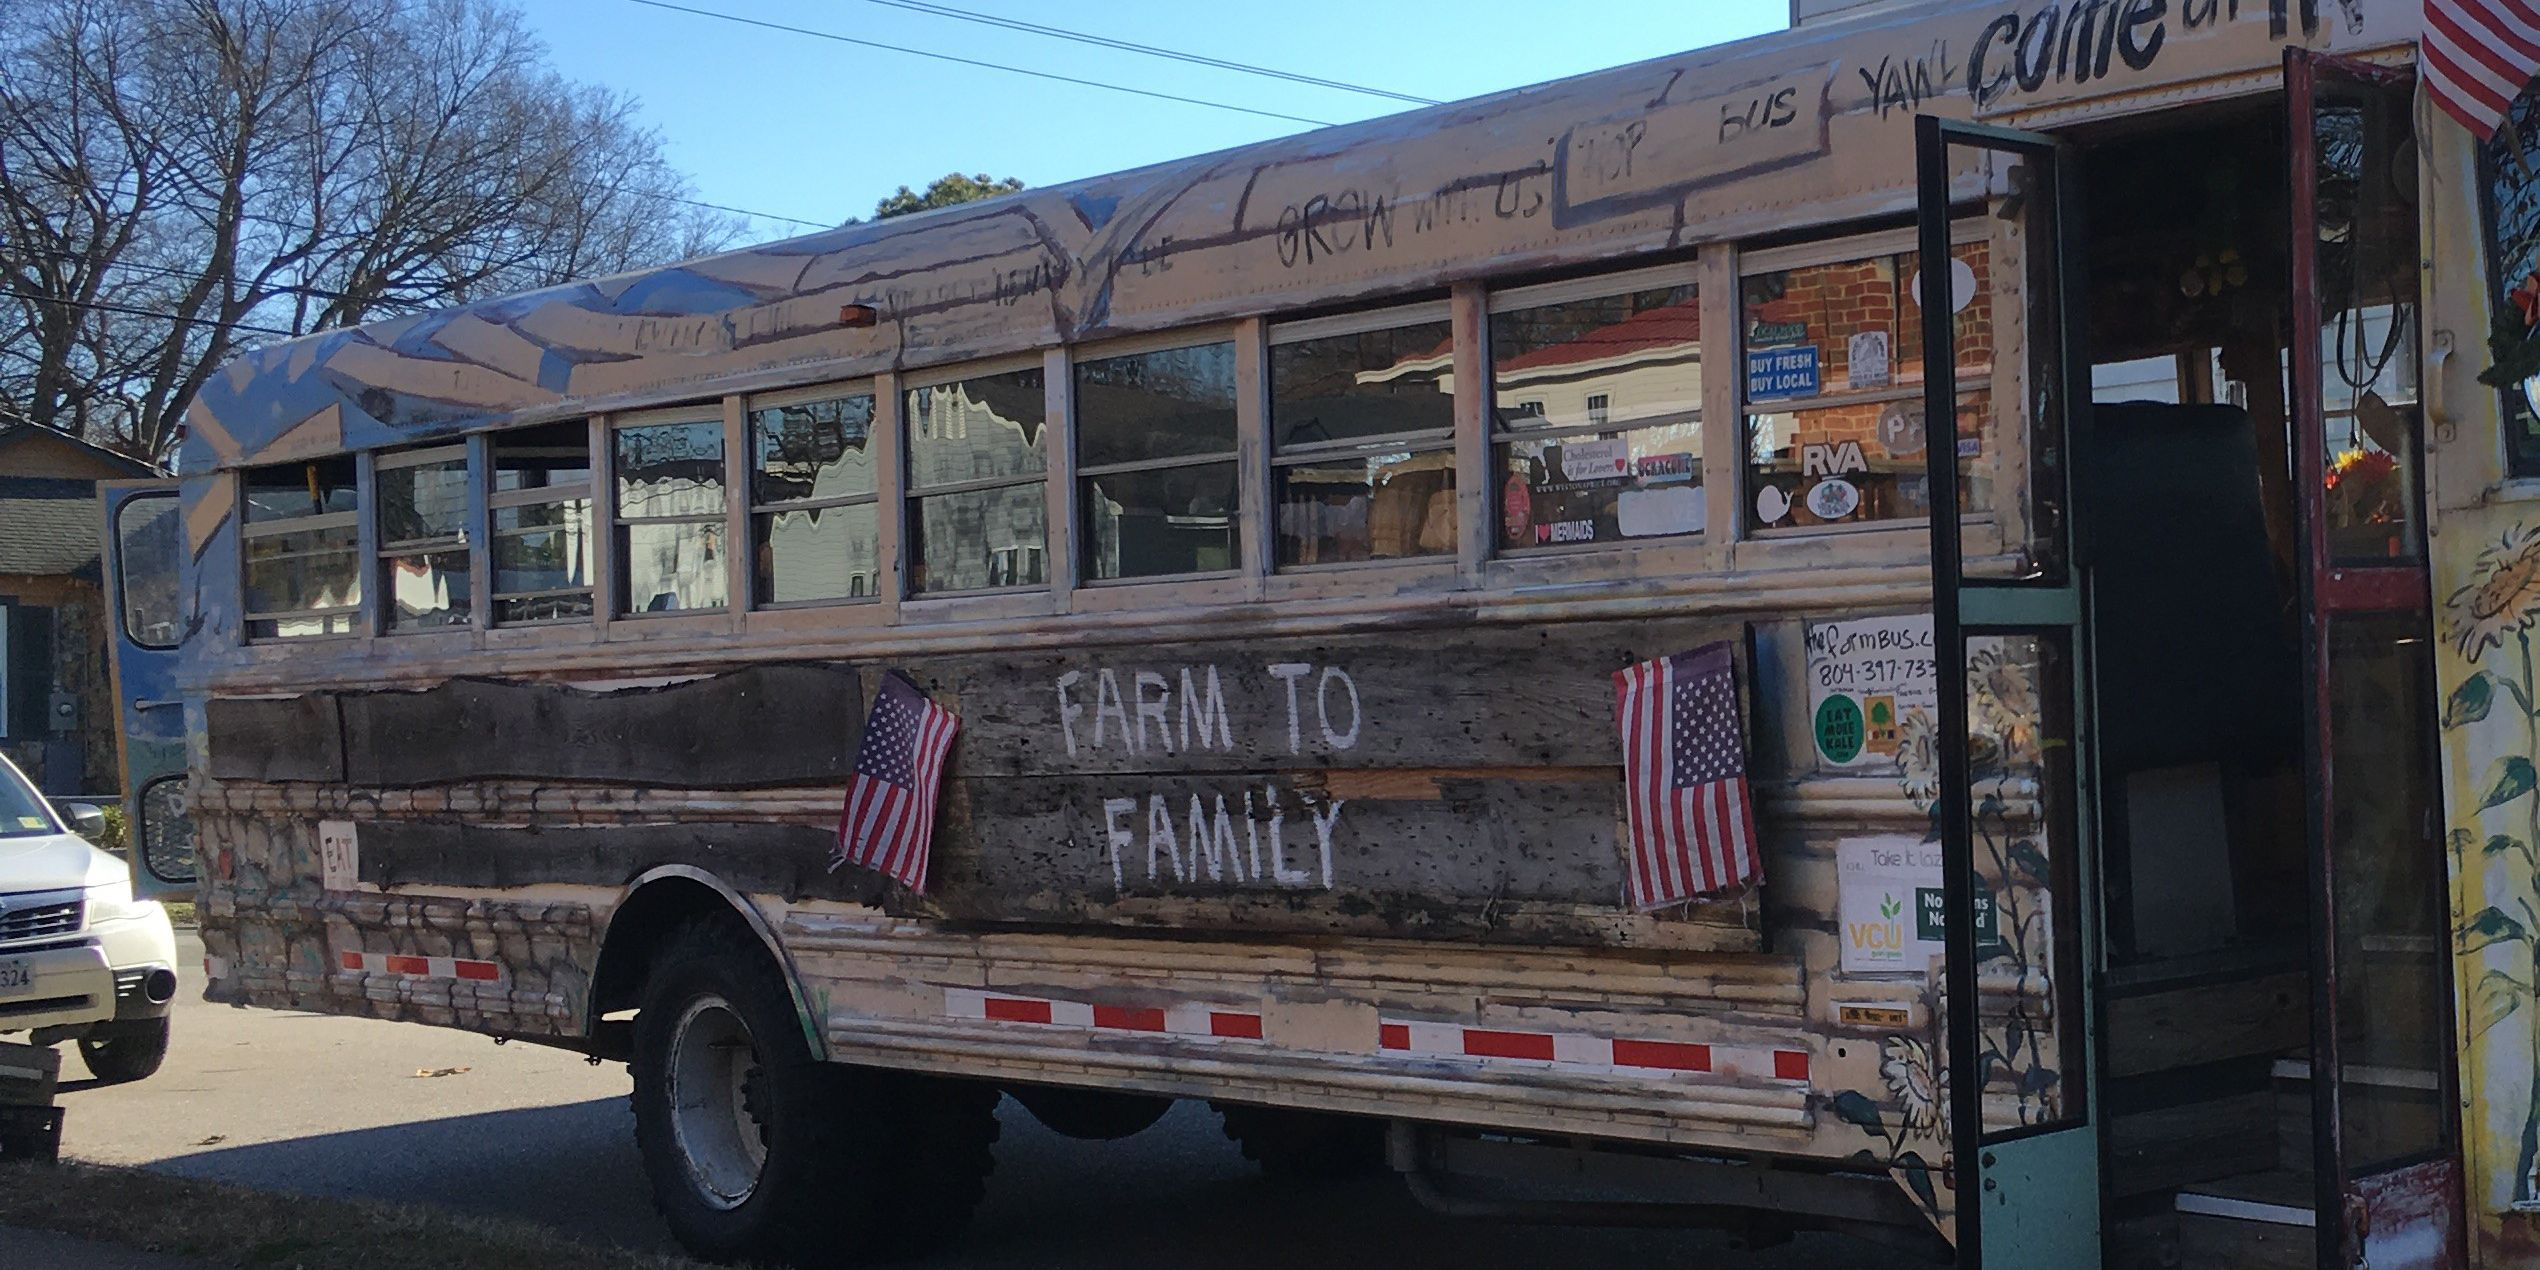 'FarmBus' gives out locally-grown food for free